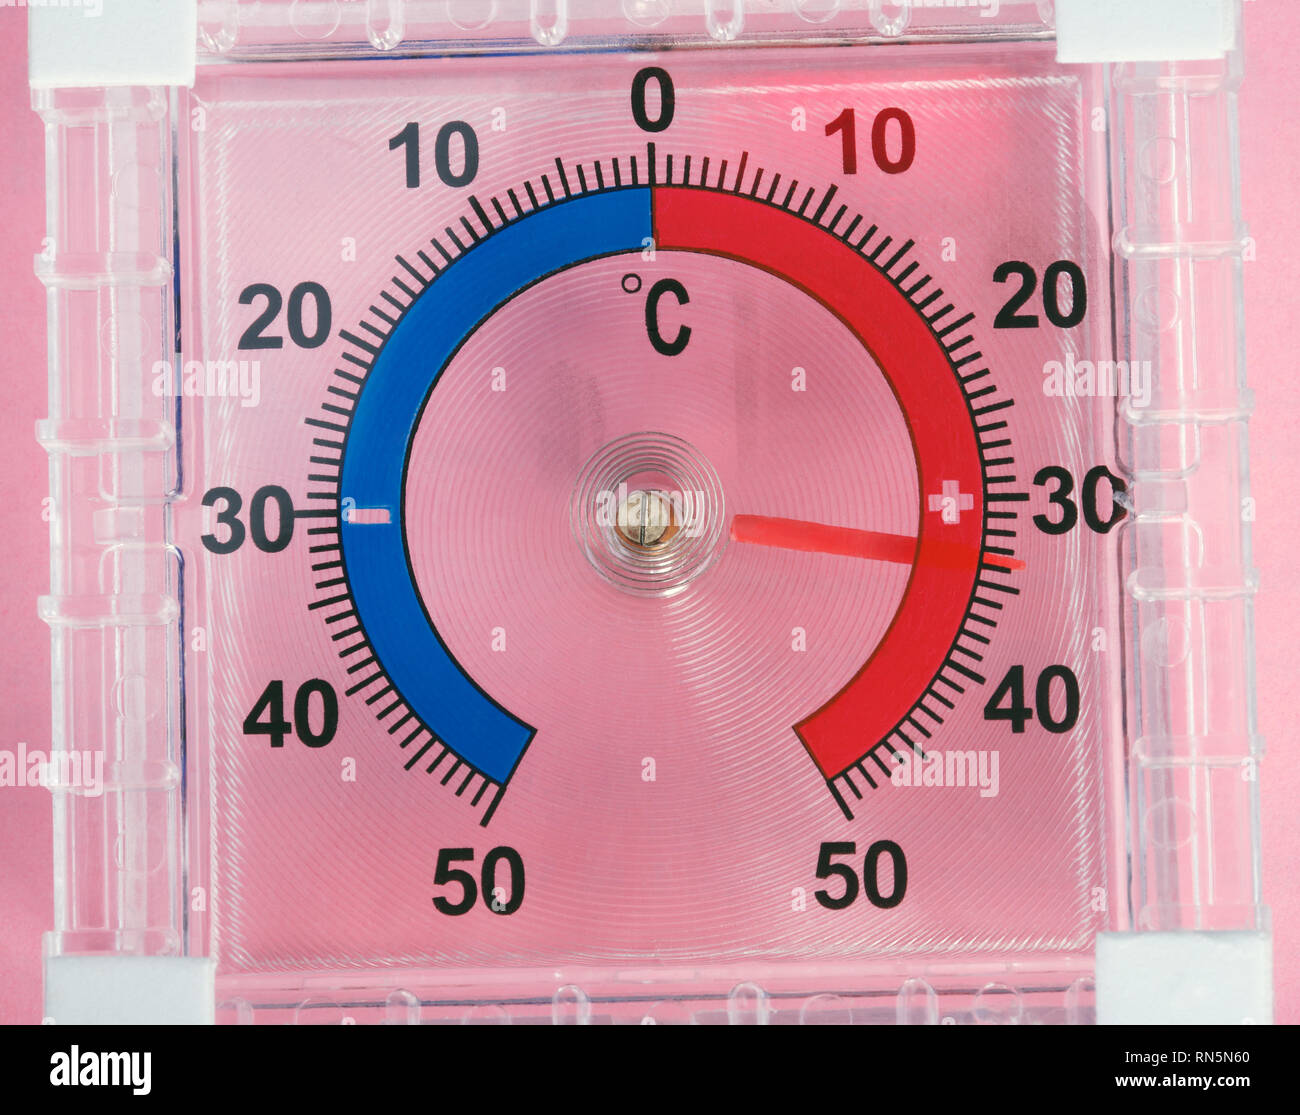 Outdoor Window Wall Thermometer on pink background - Stock Image